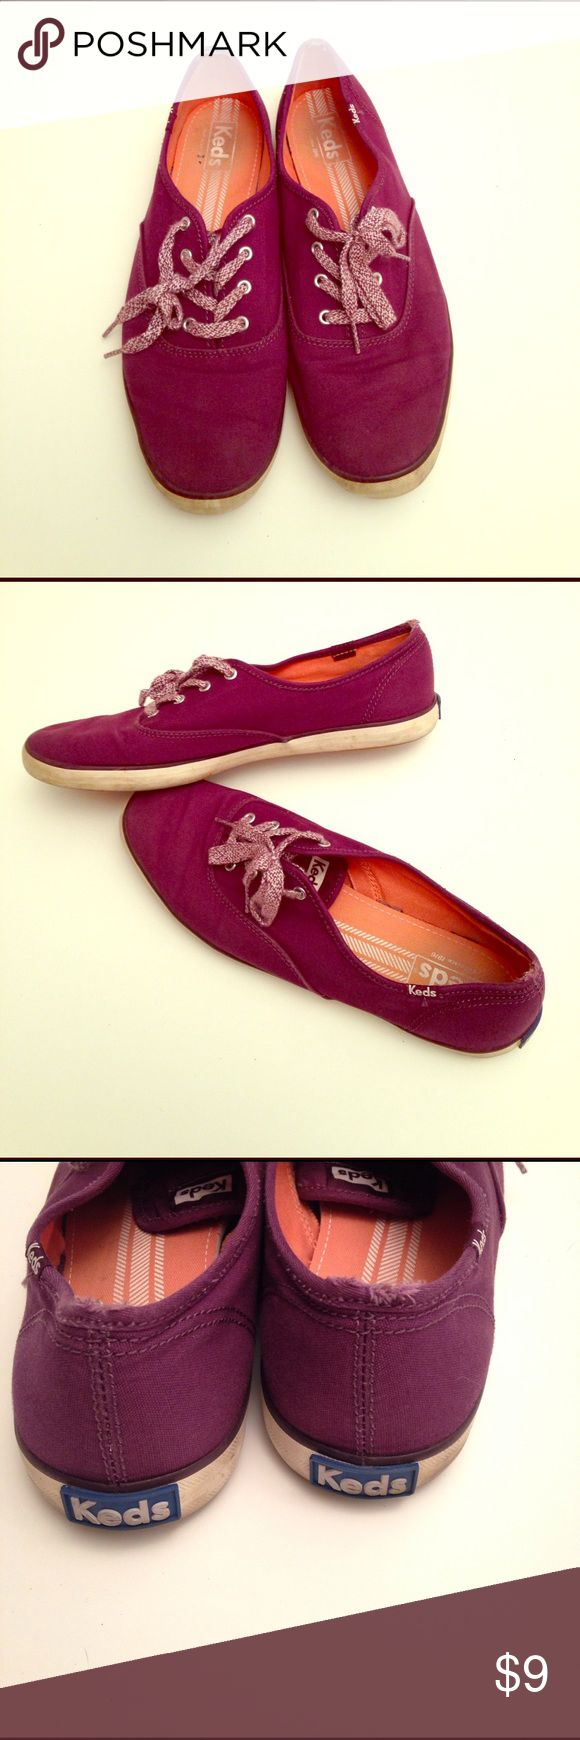 Purple Keds sneakers size 9.5 Cute purple Keds! Well loved. Not my style anymore. True to size Keds Shoes Sneakers